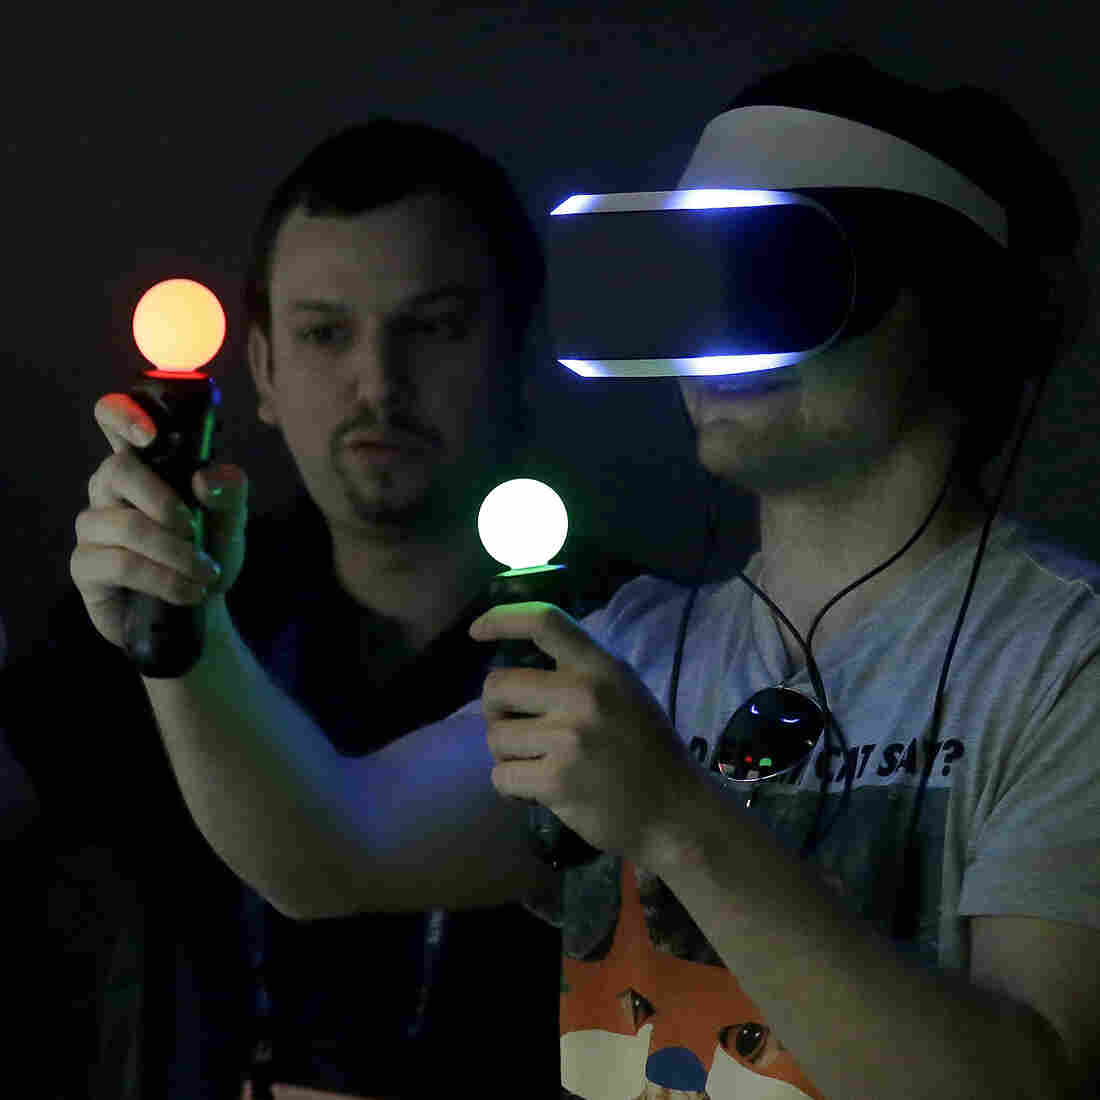 Sony Steps Into Virtual Reality With 'Project Morpheus'